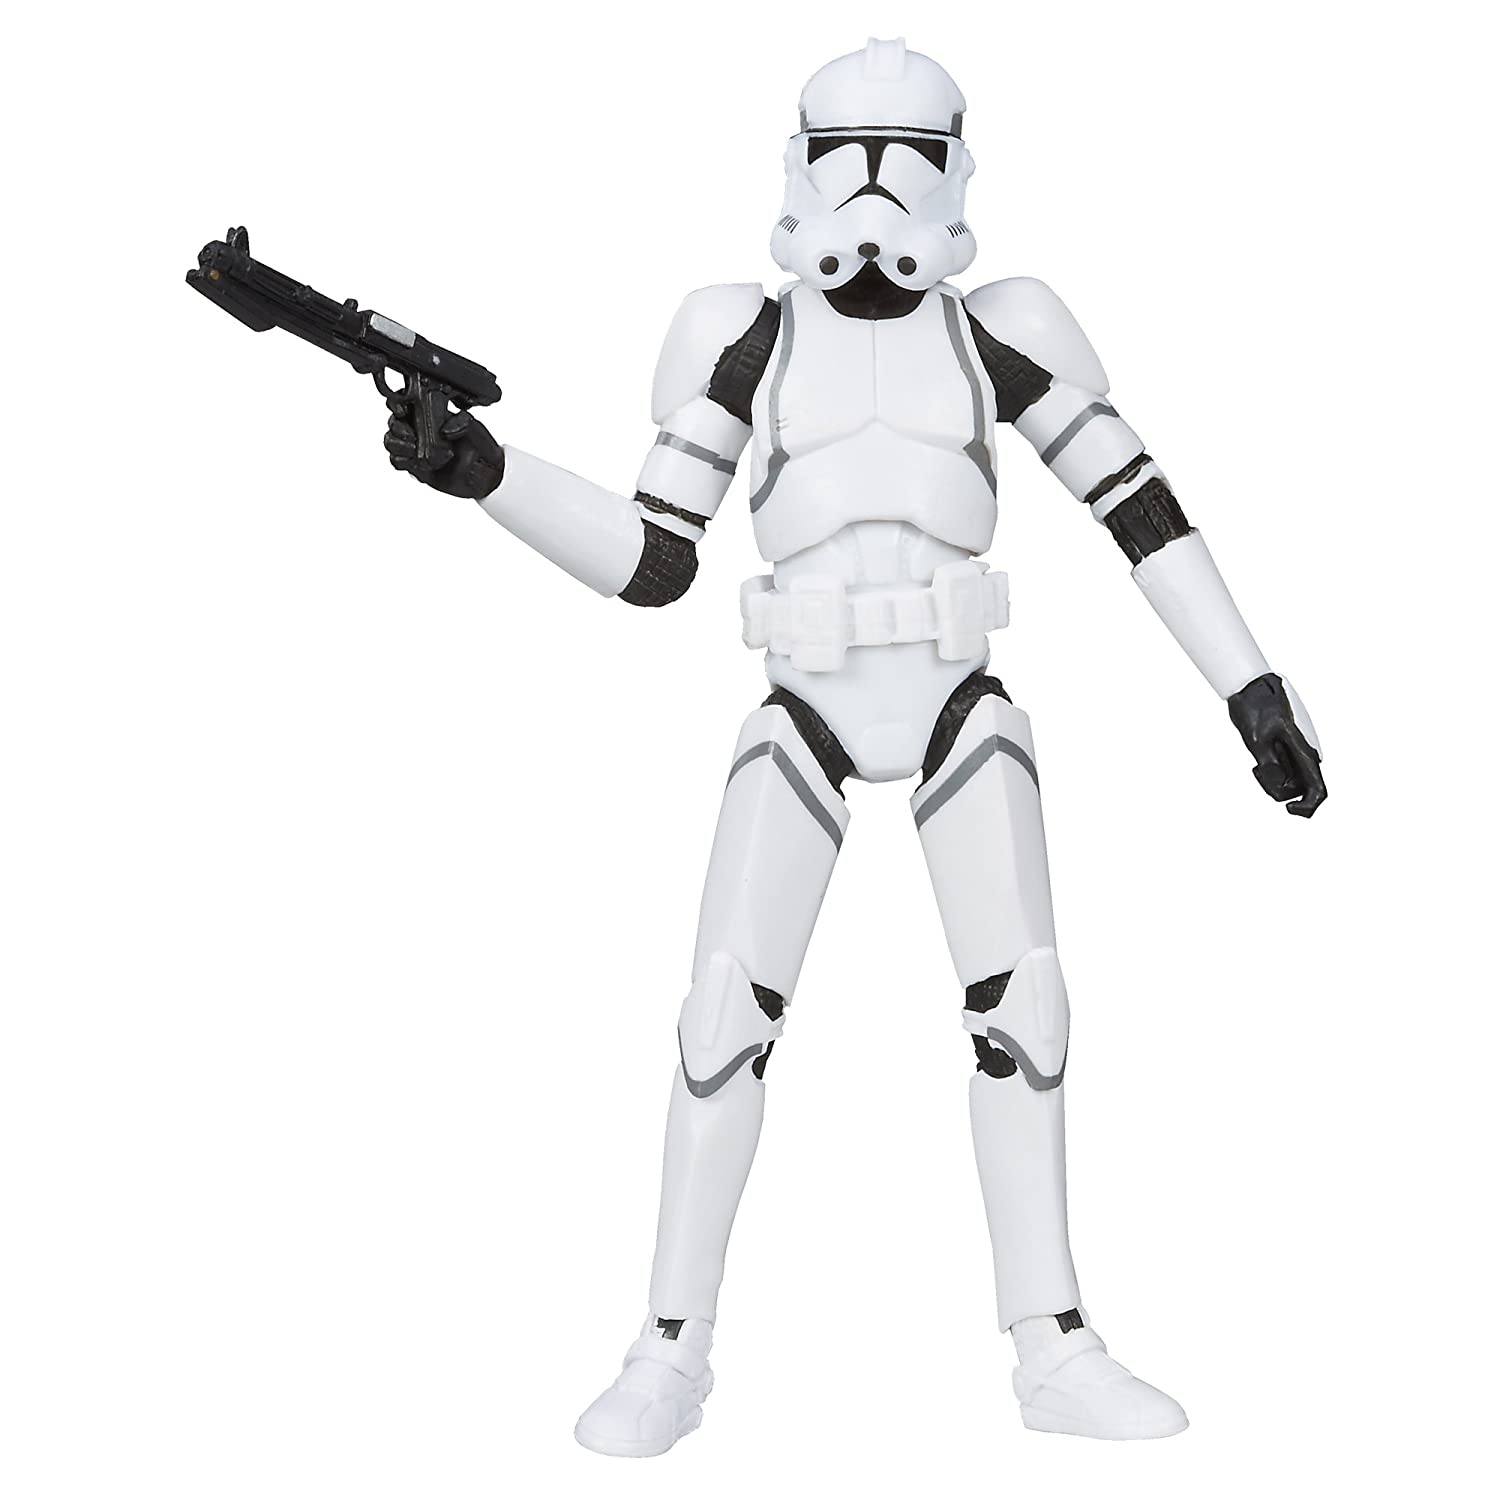 "Star Wars Epic Battle SCOUT TROOPER STORMTROOPER 3.75/"" figure hasbro collect toy"